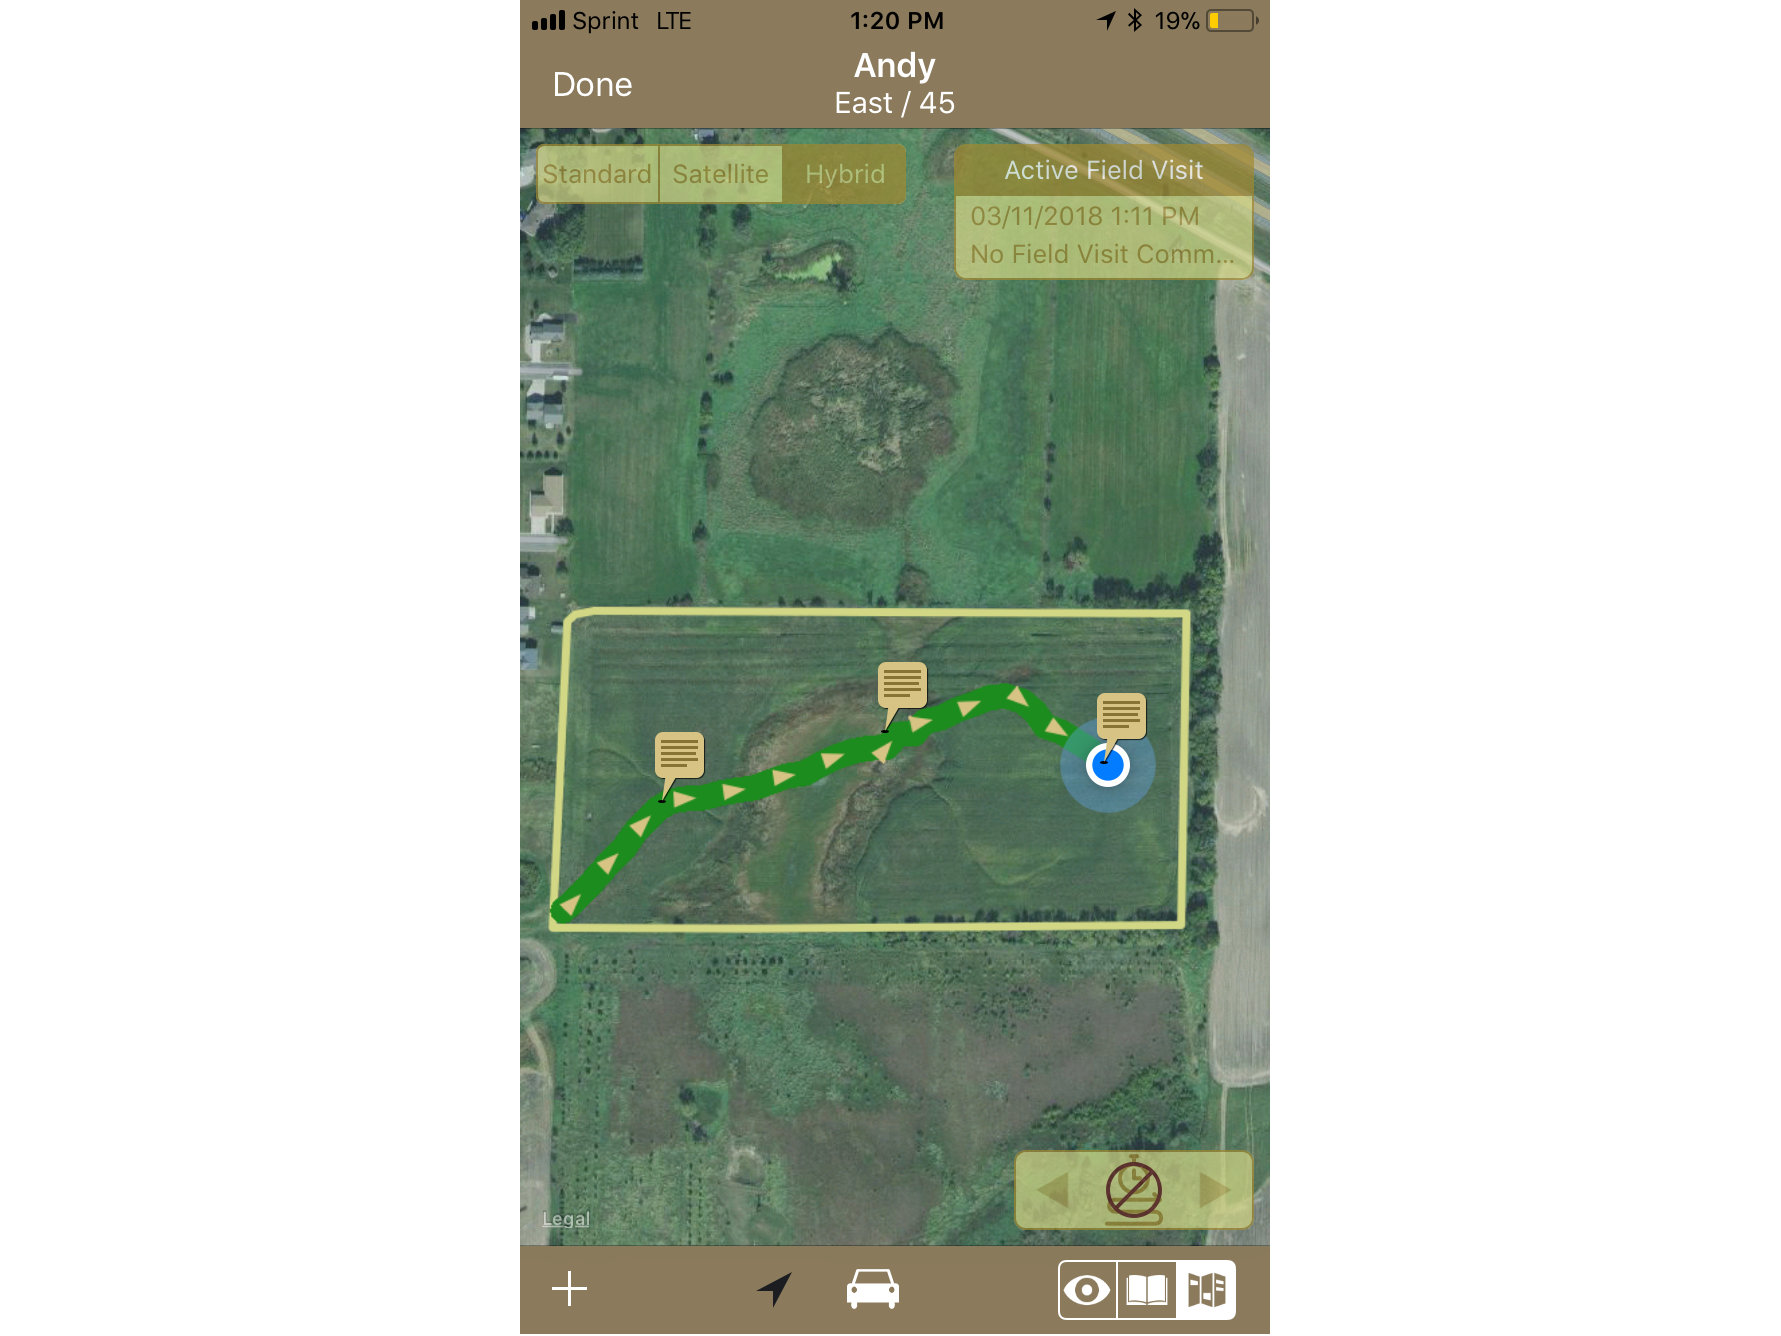 Tracking Path Through Field GeoNotes on iPhone